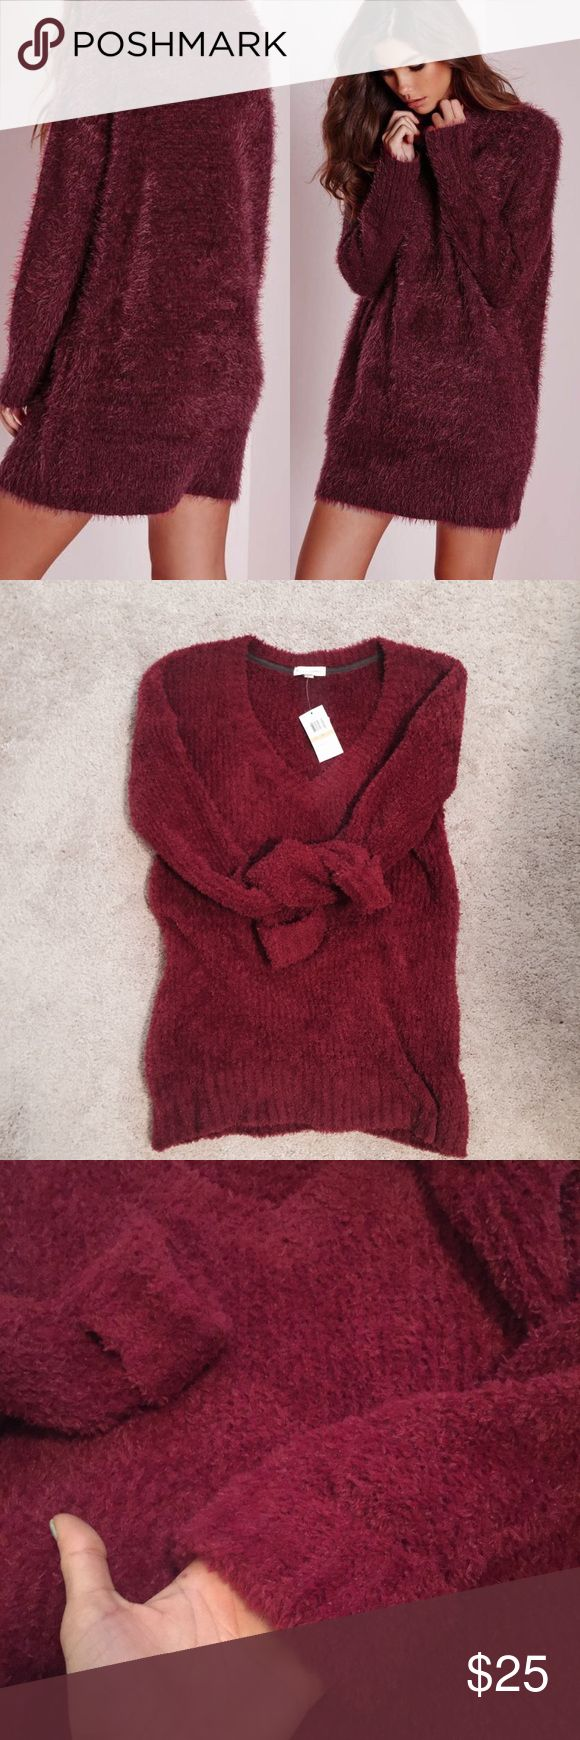 """V-neck Burgundy fluffy sweater Coco + Jaimeson v-neck fluffy sweater  Item is brand new with Tag size M could fit S_M  First picture is just to give you an idea. Im 5.6"""" tall & its mid tight (. Measurements will be provided upon request ) Retail price $45 coco + jameson Sweaters V-Necks"""